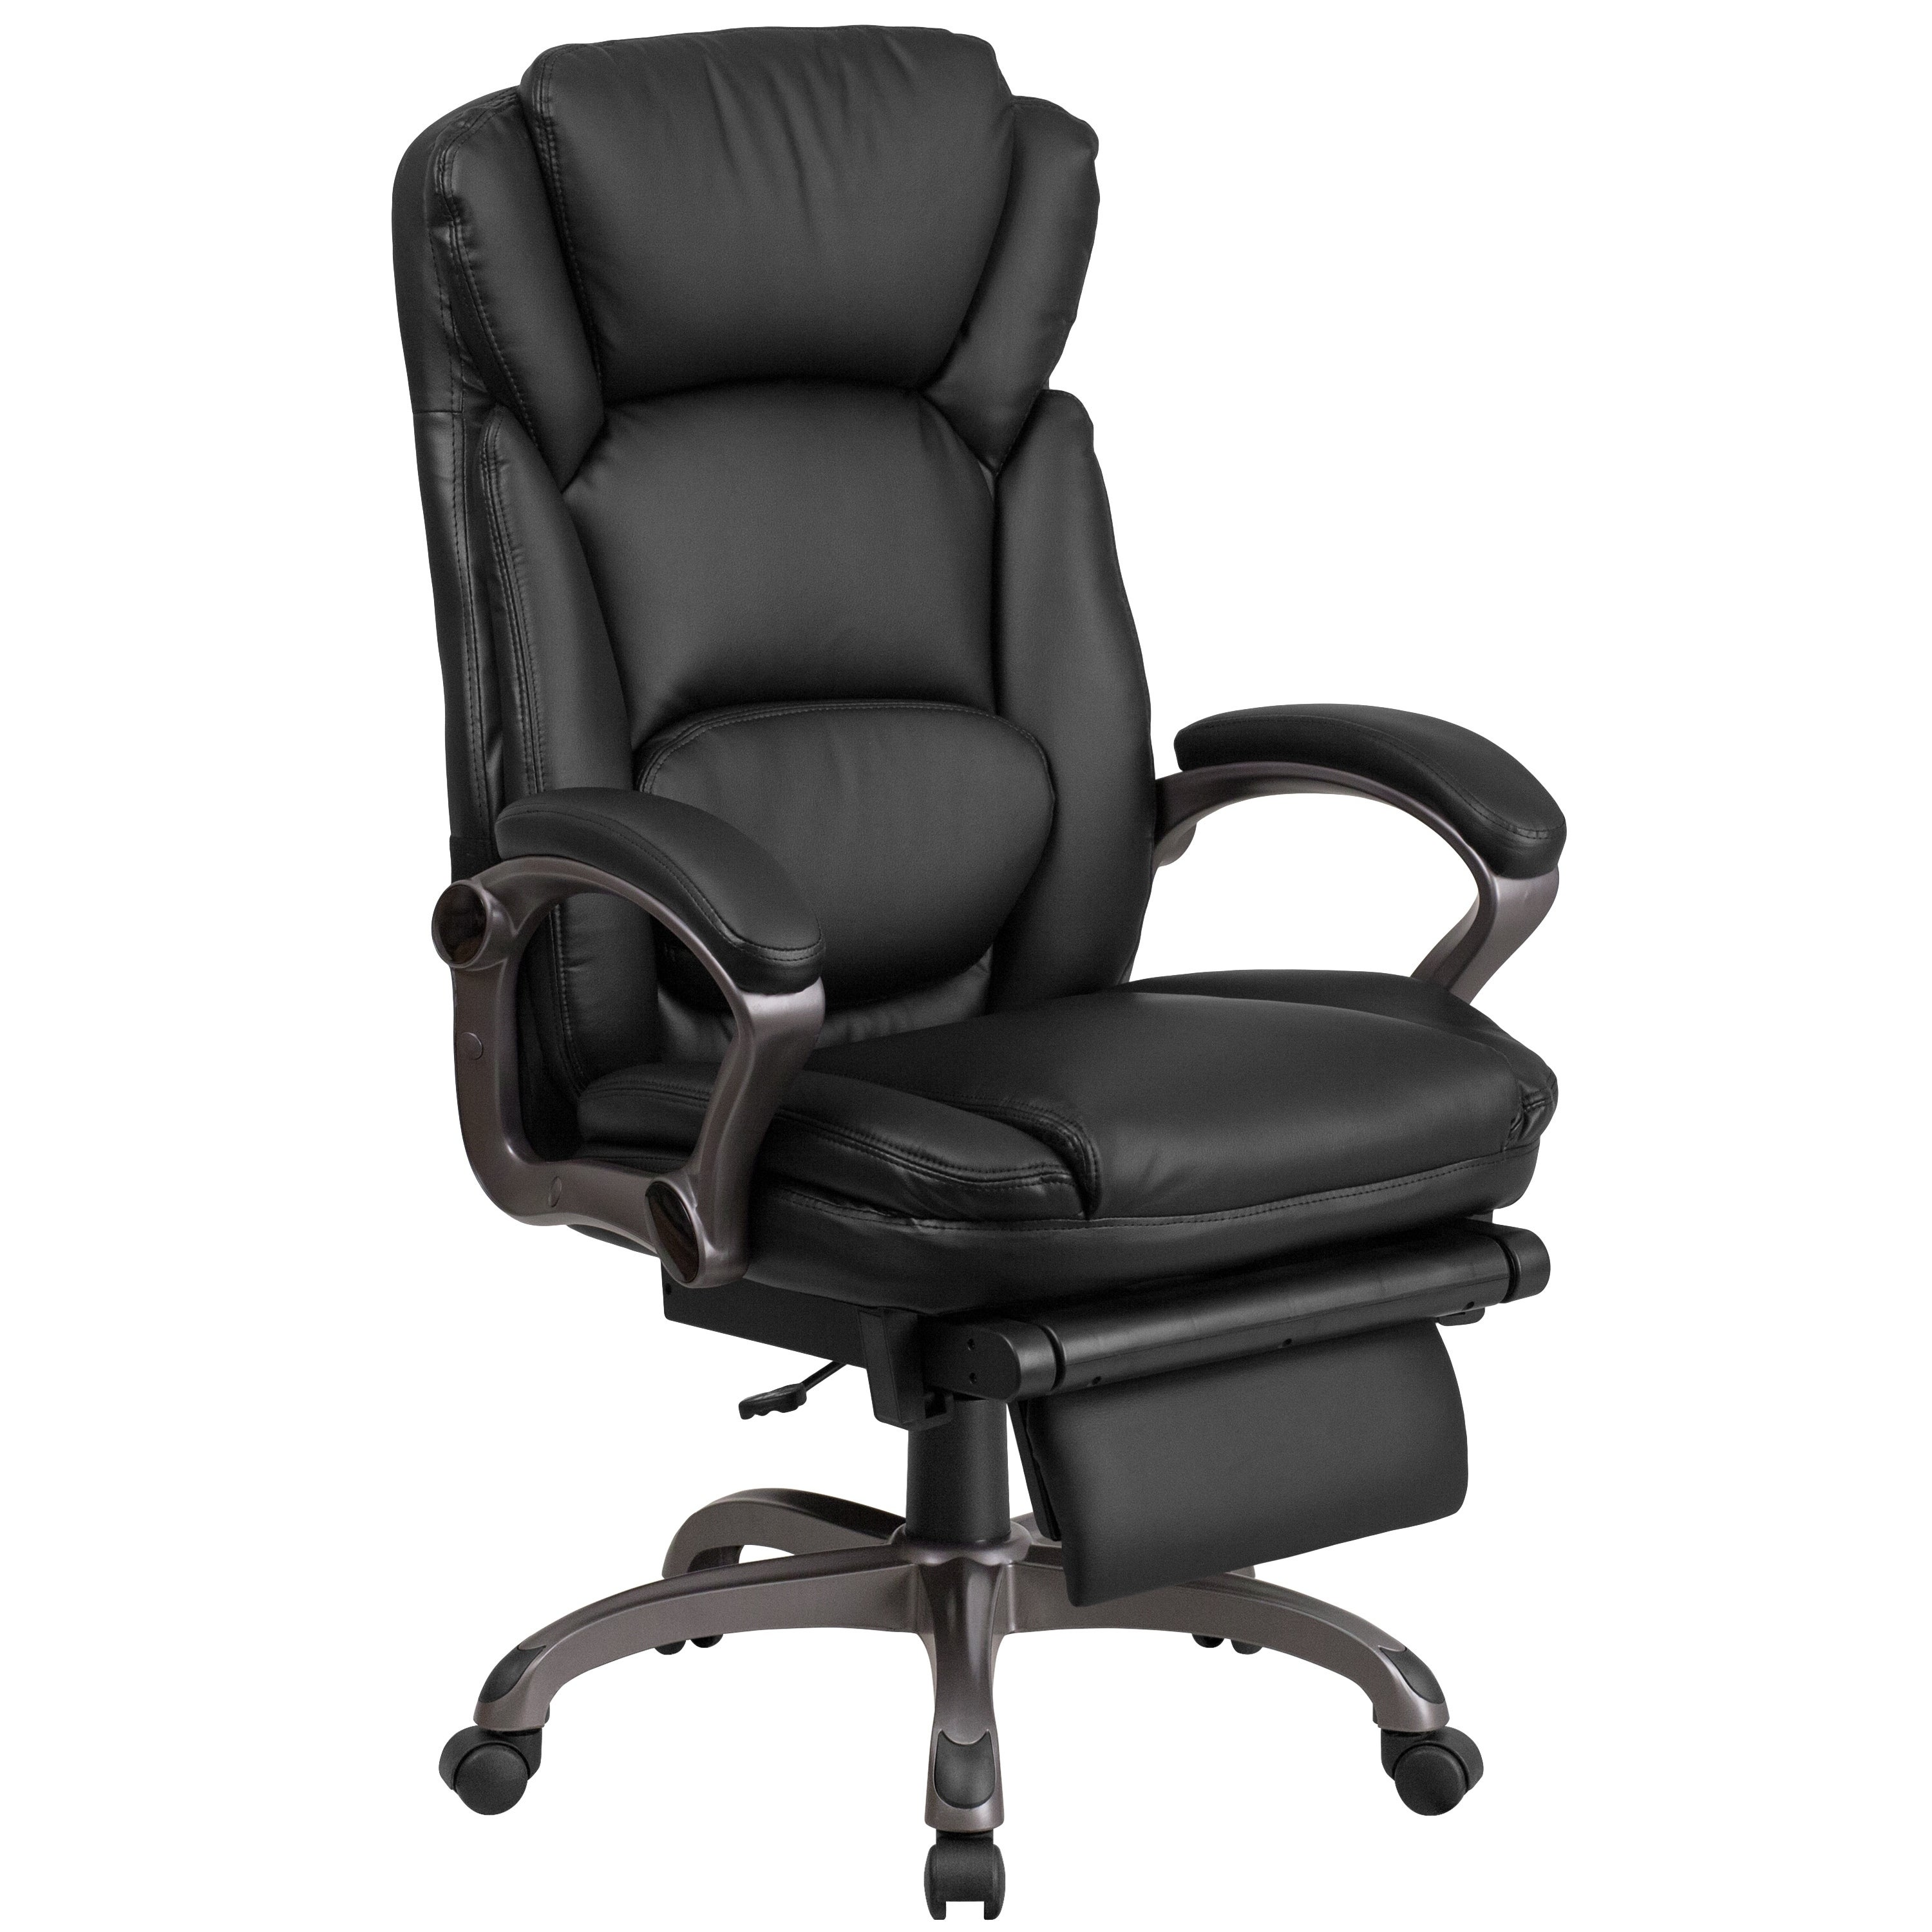 Incredible Details About High Back Bonded Leather Executive Reclining Swivel Chair Black Evergreenethics Interior Chair Design Evergreenethicsorg